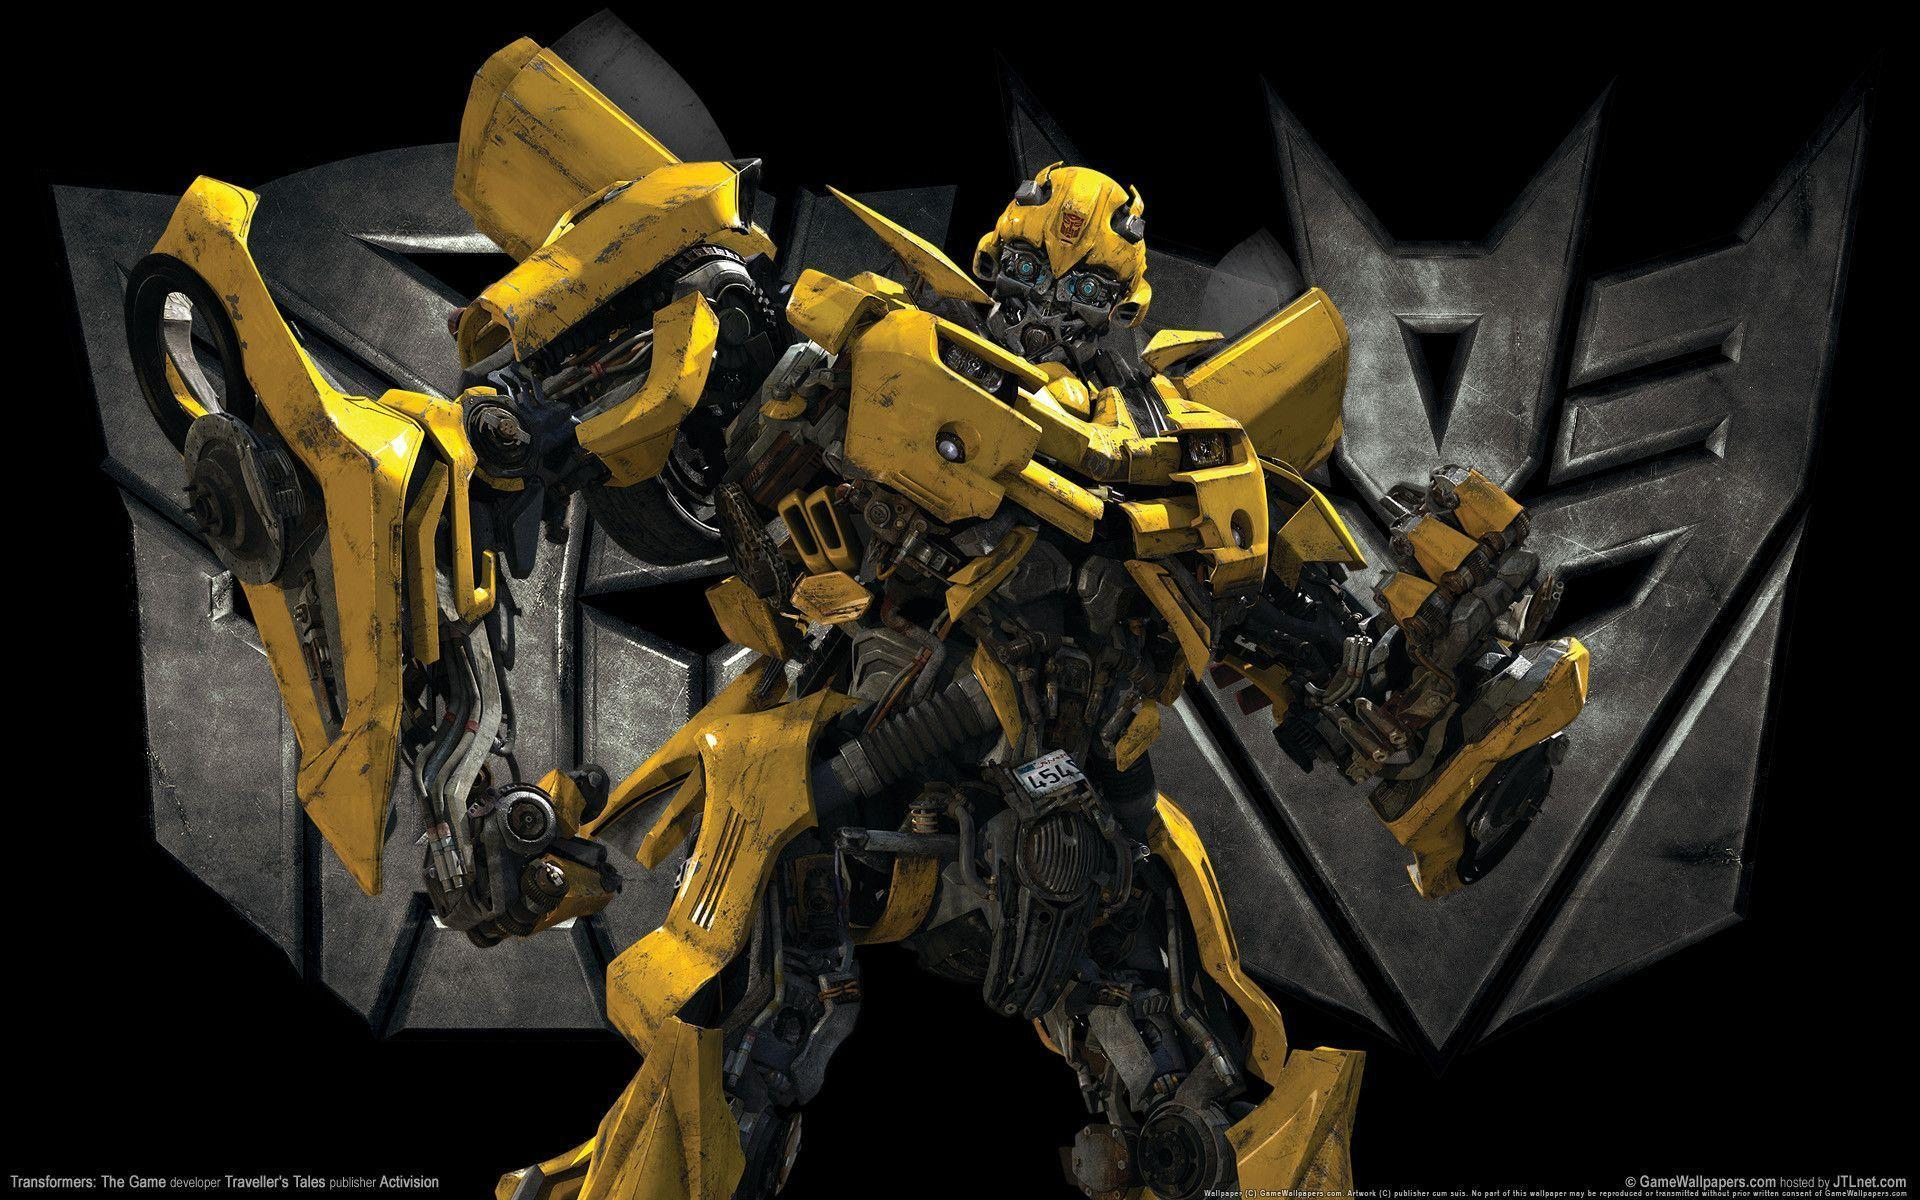 Transformers Bumblebee Wallpapers